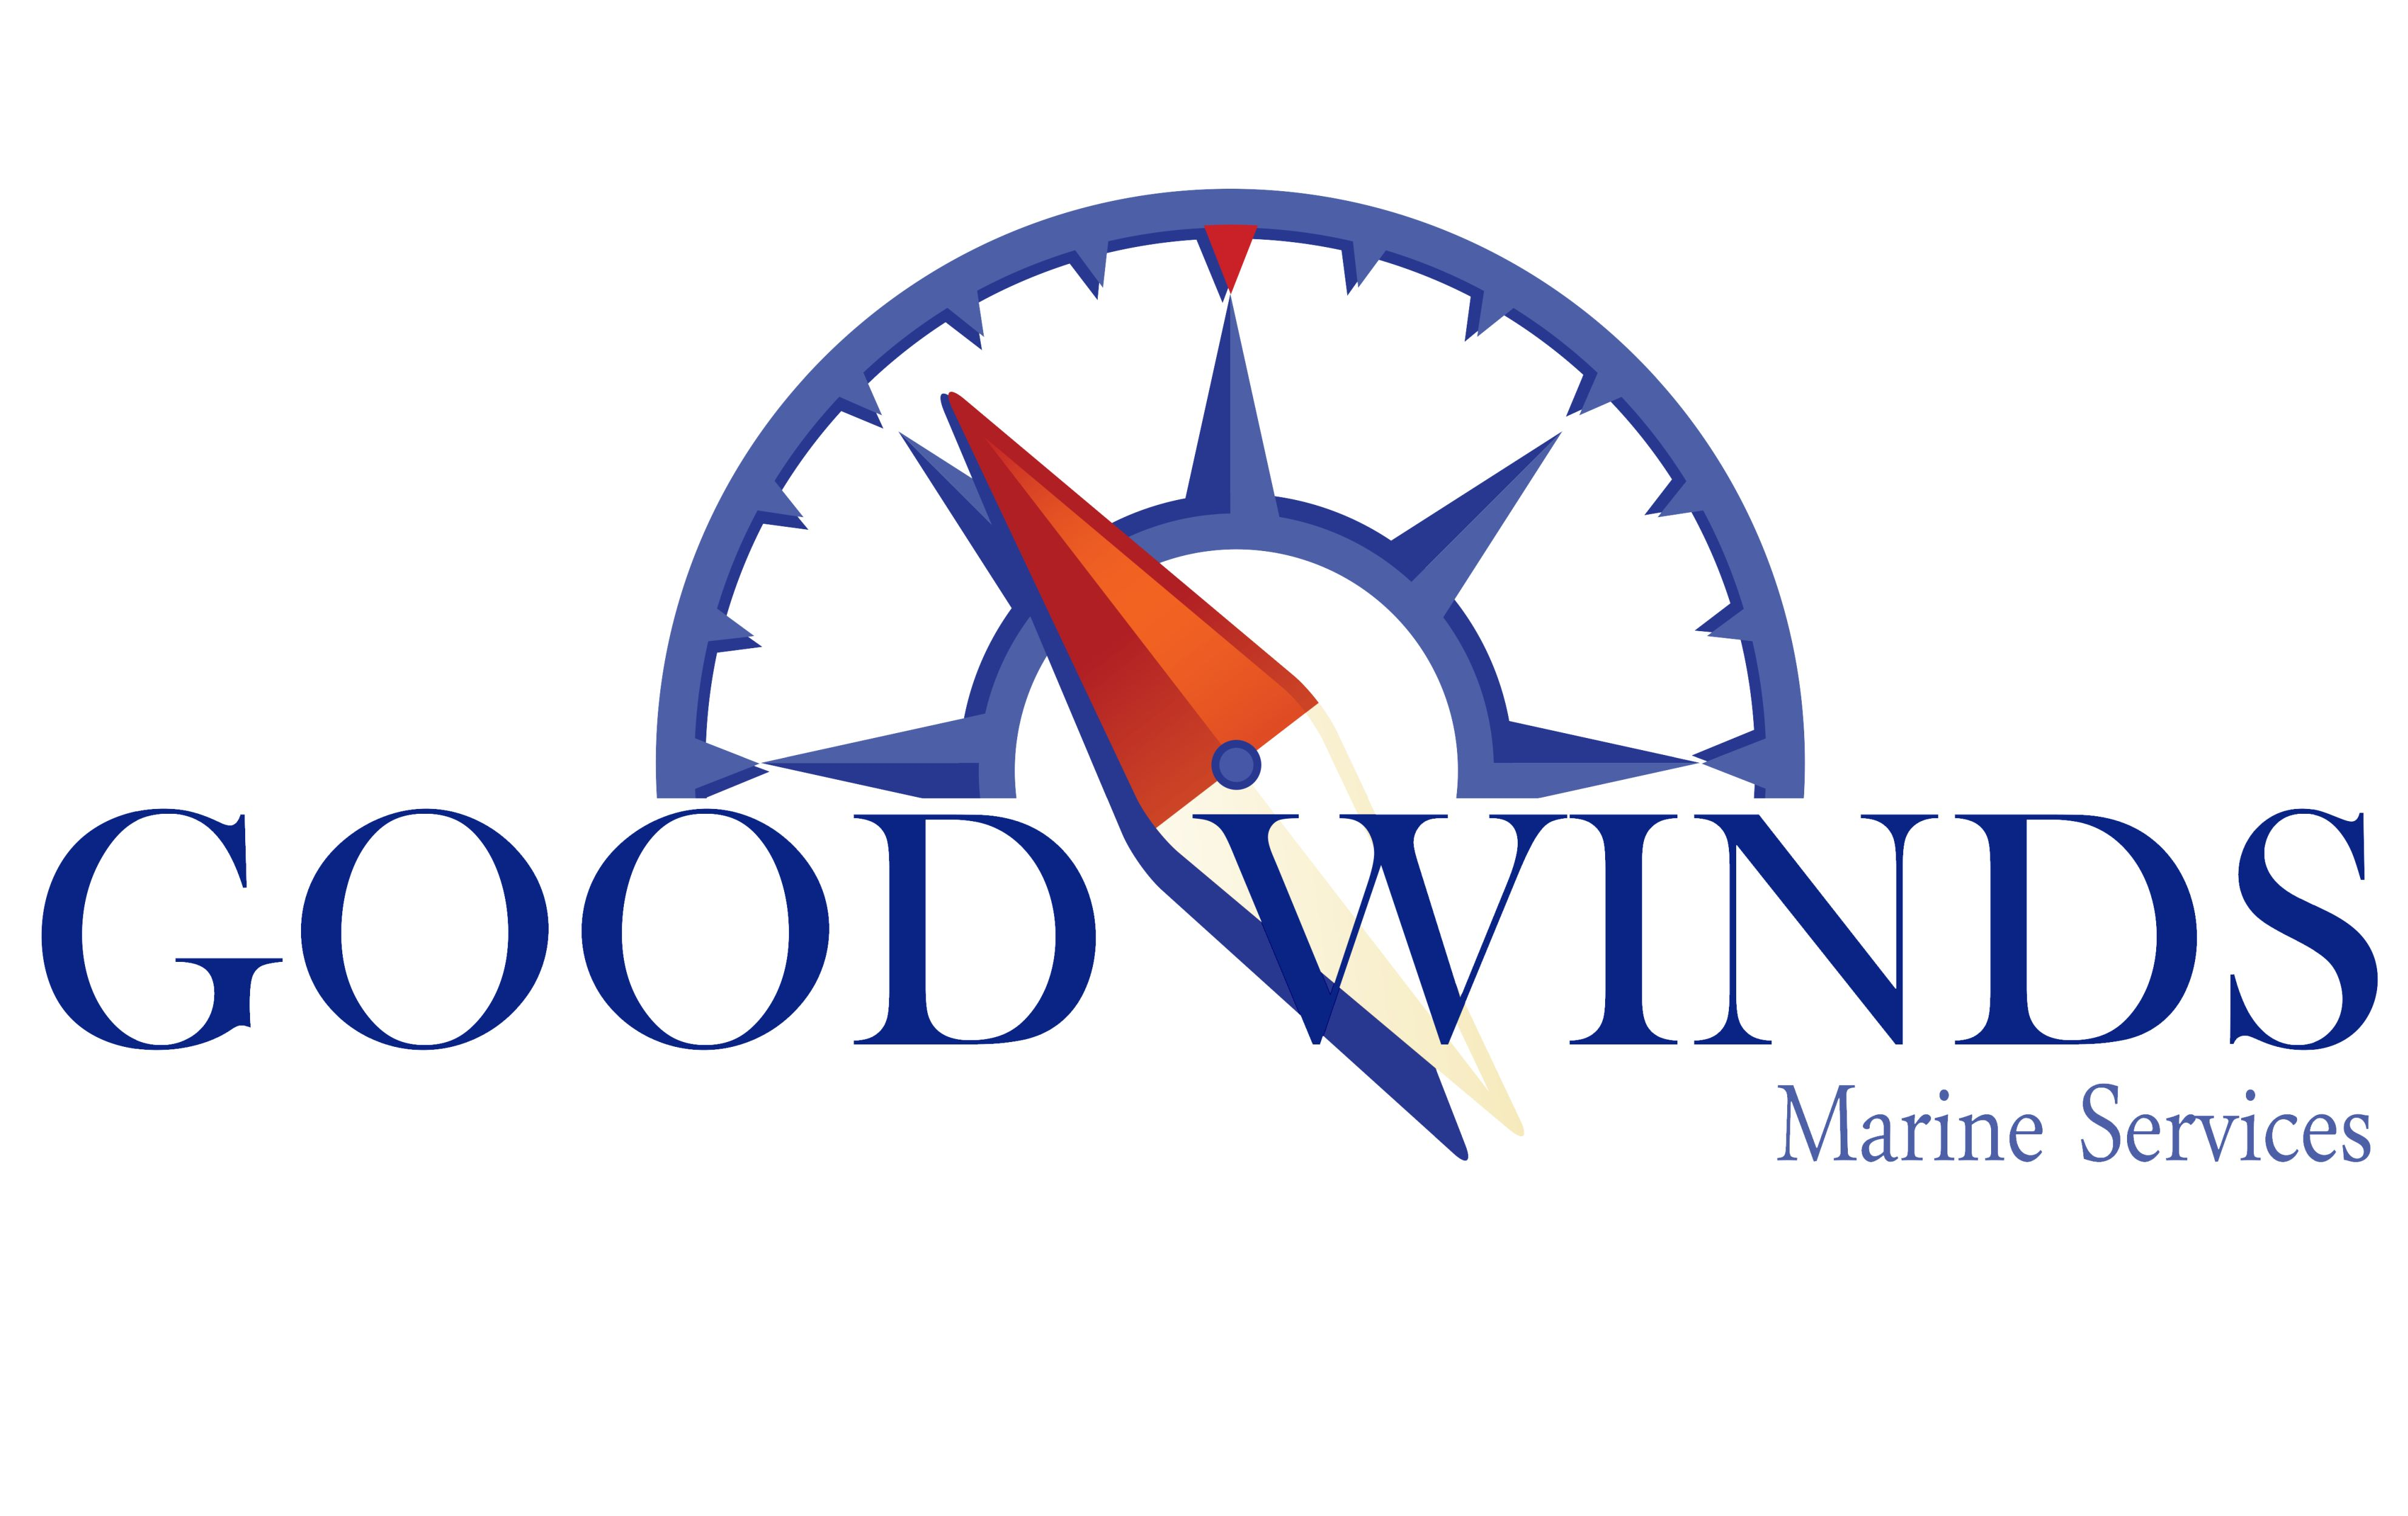 GOOD WINDS MARINE SERVICES